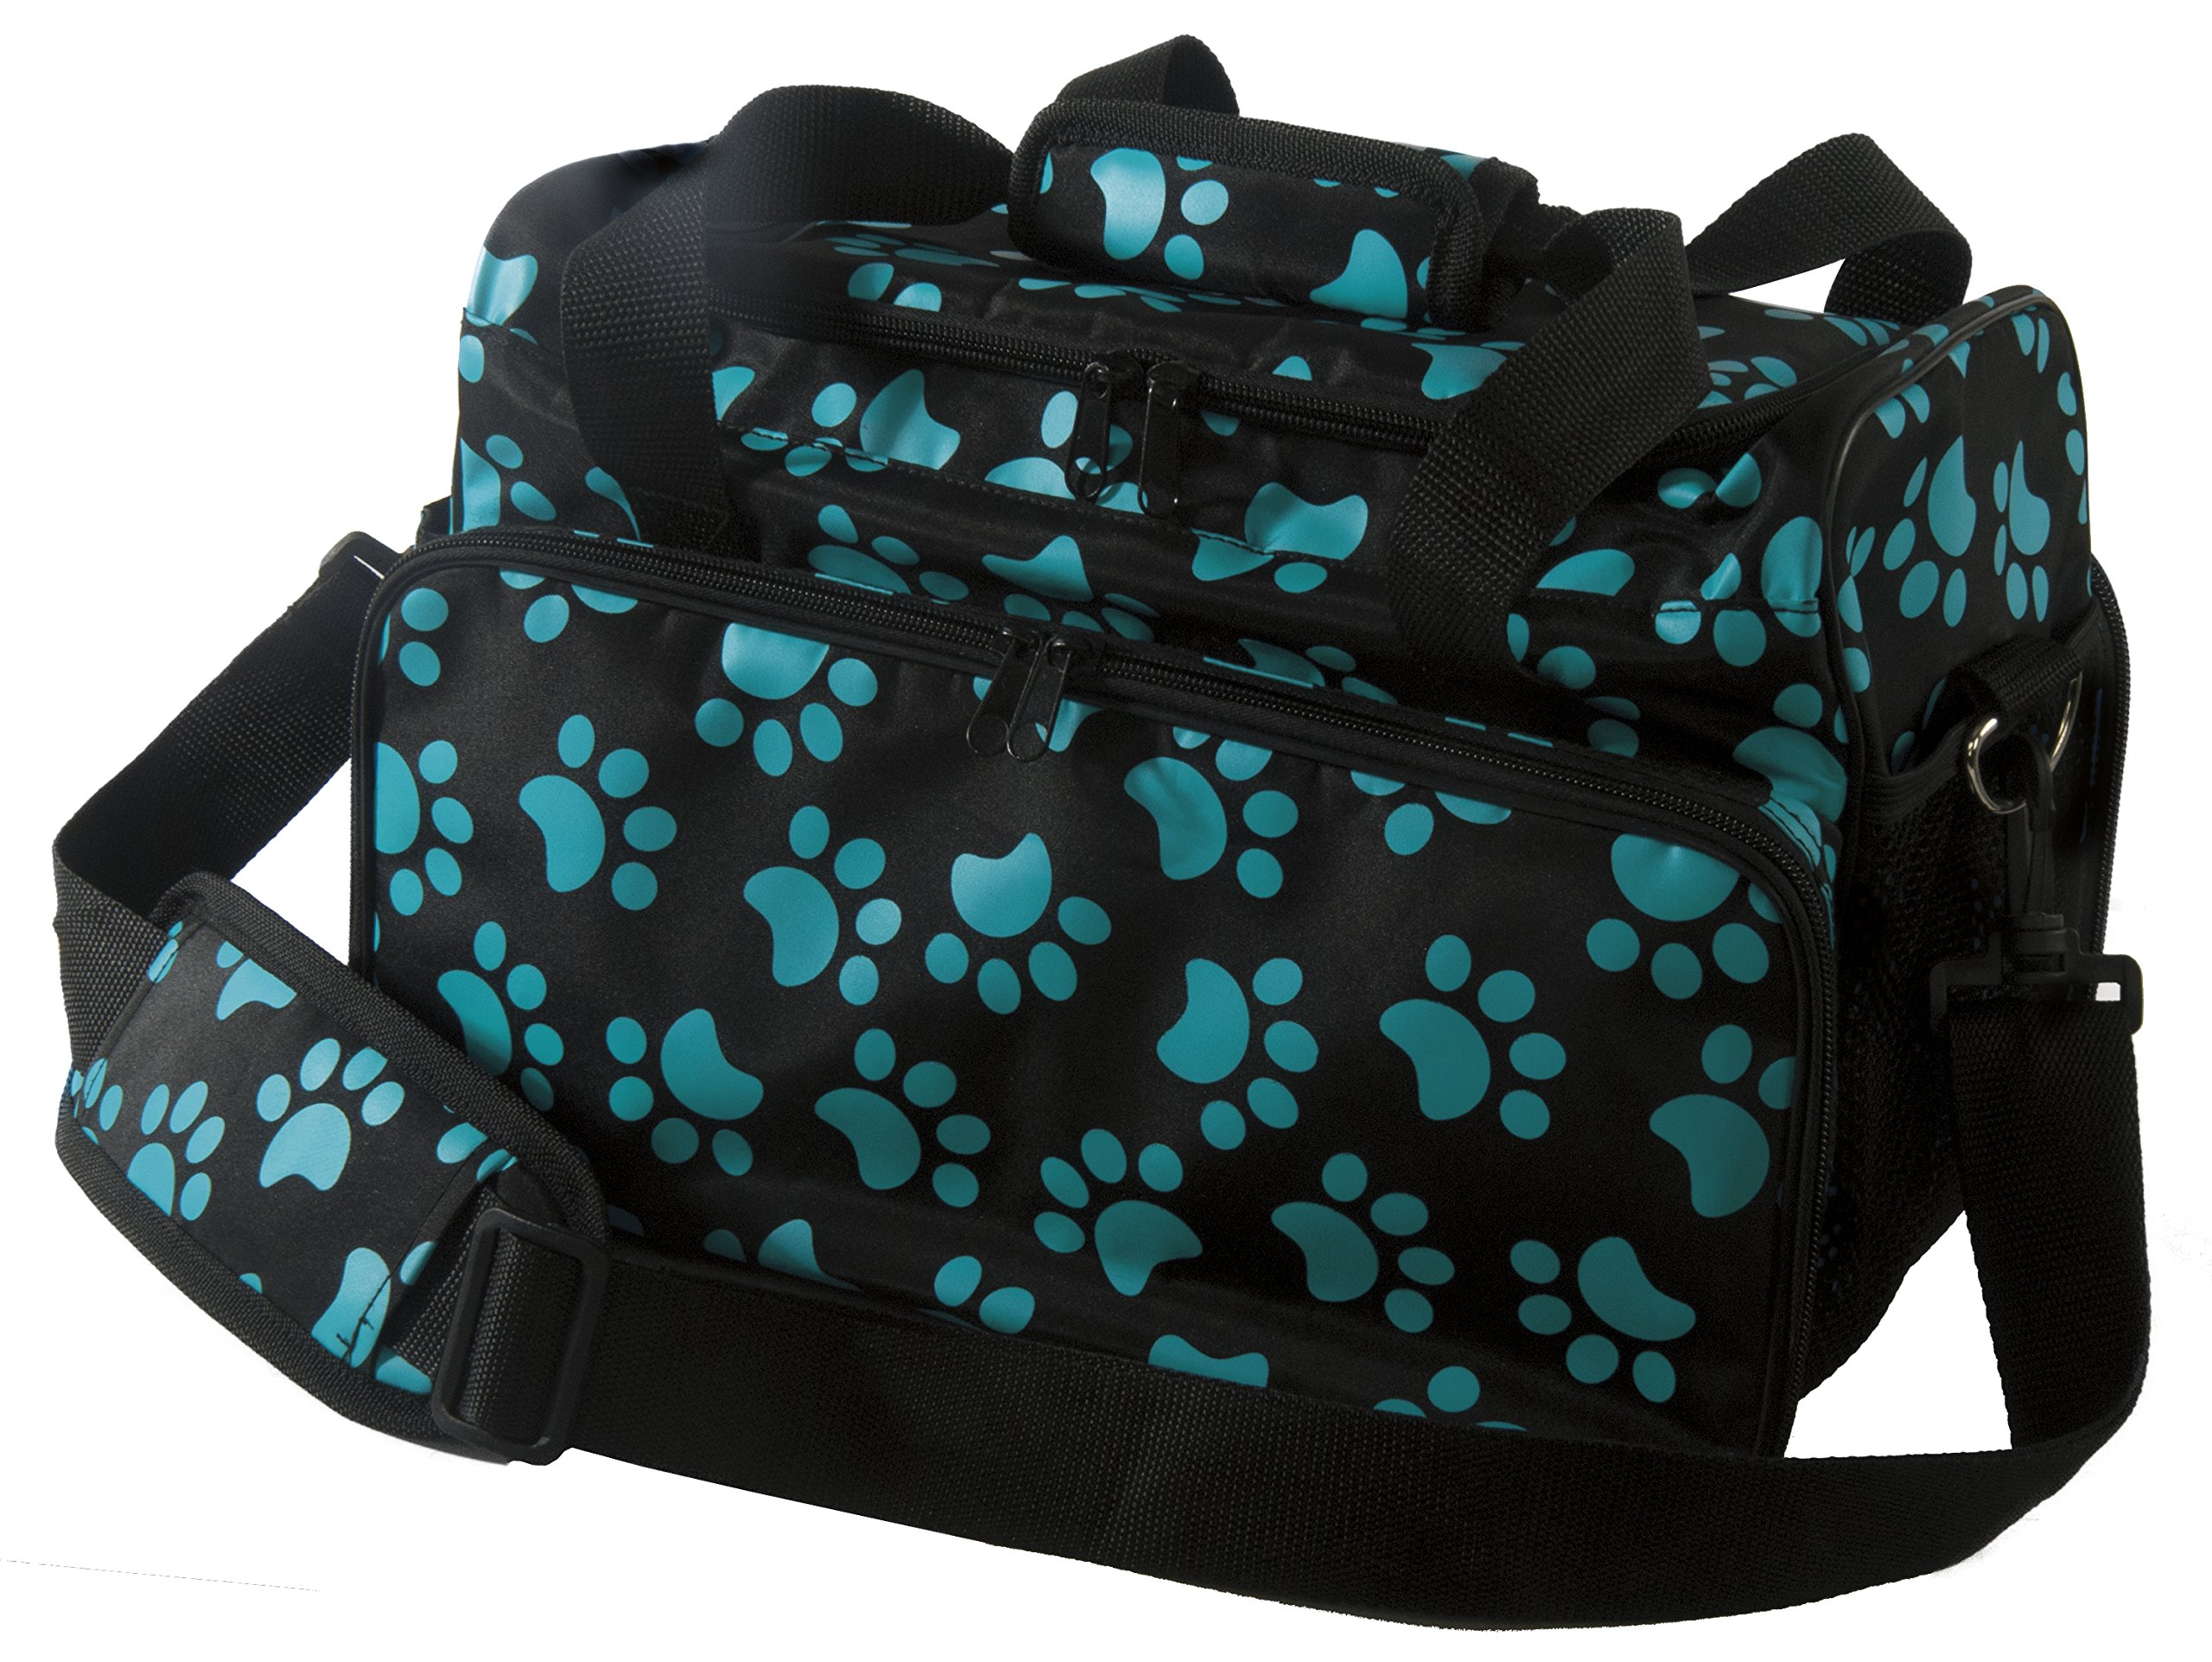 Wahl Professional Animal Grooming Tool Travel and Storage Bag, Turquoise (97764-300)